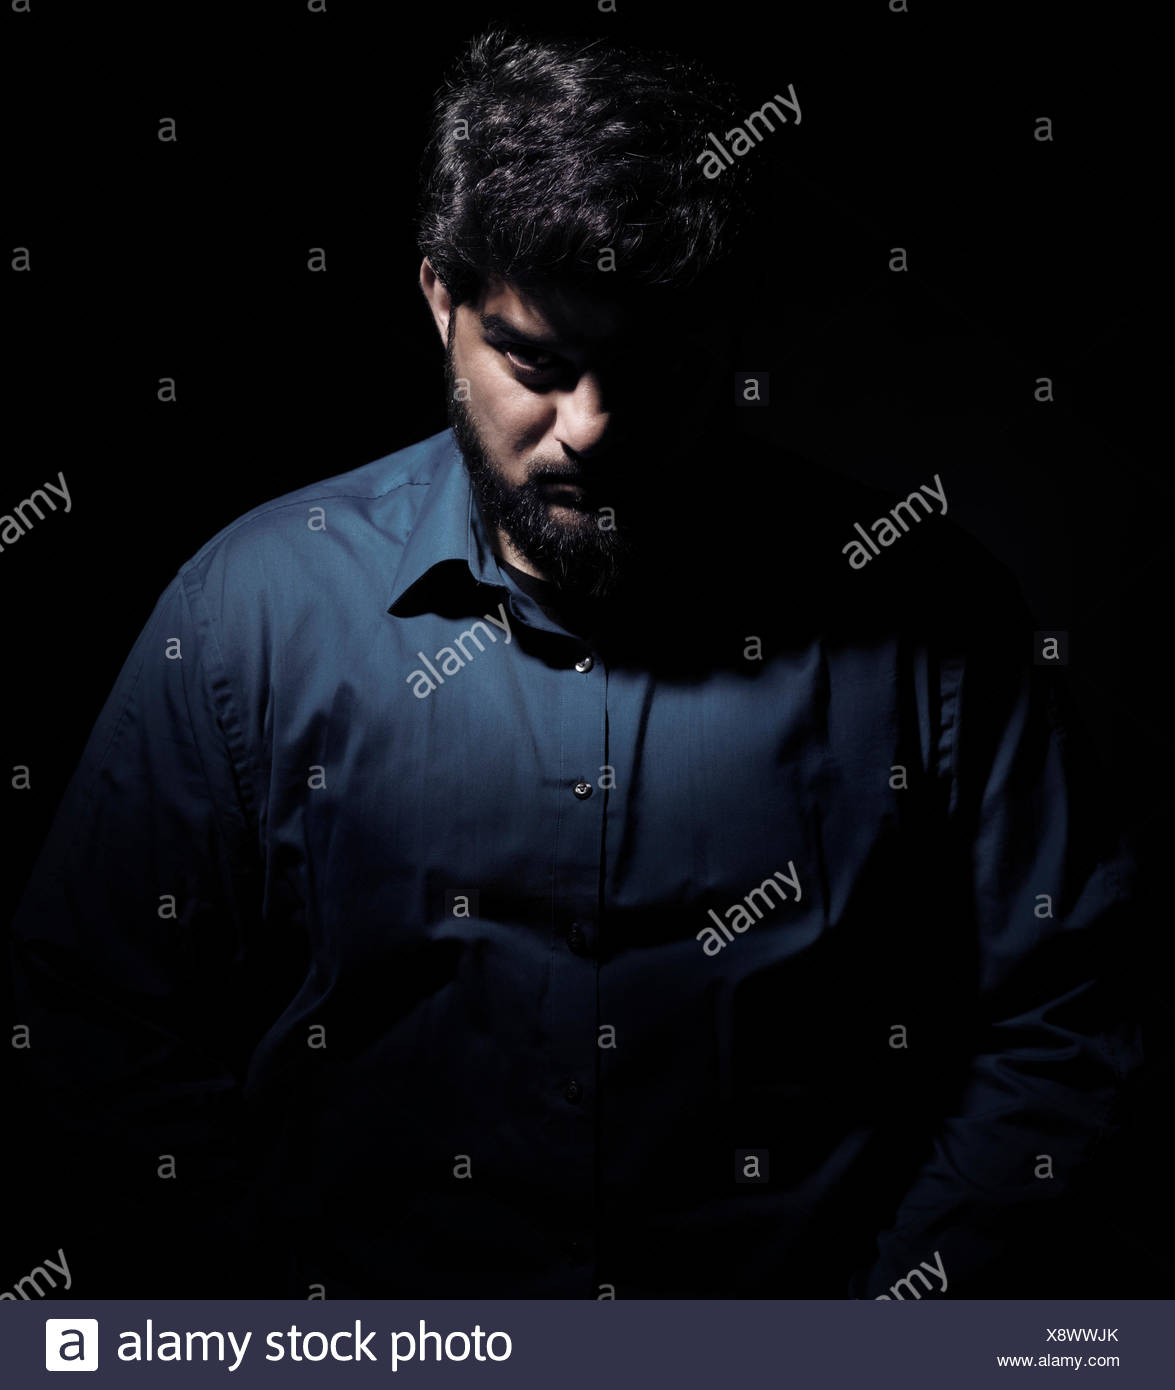 Dramatic shadowy portrait of a man - Stock Image